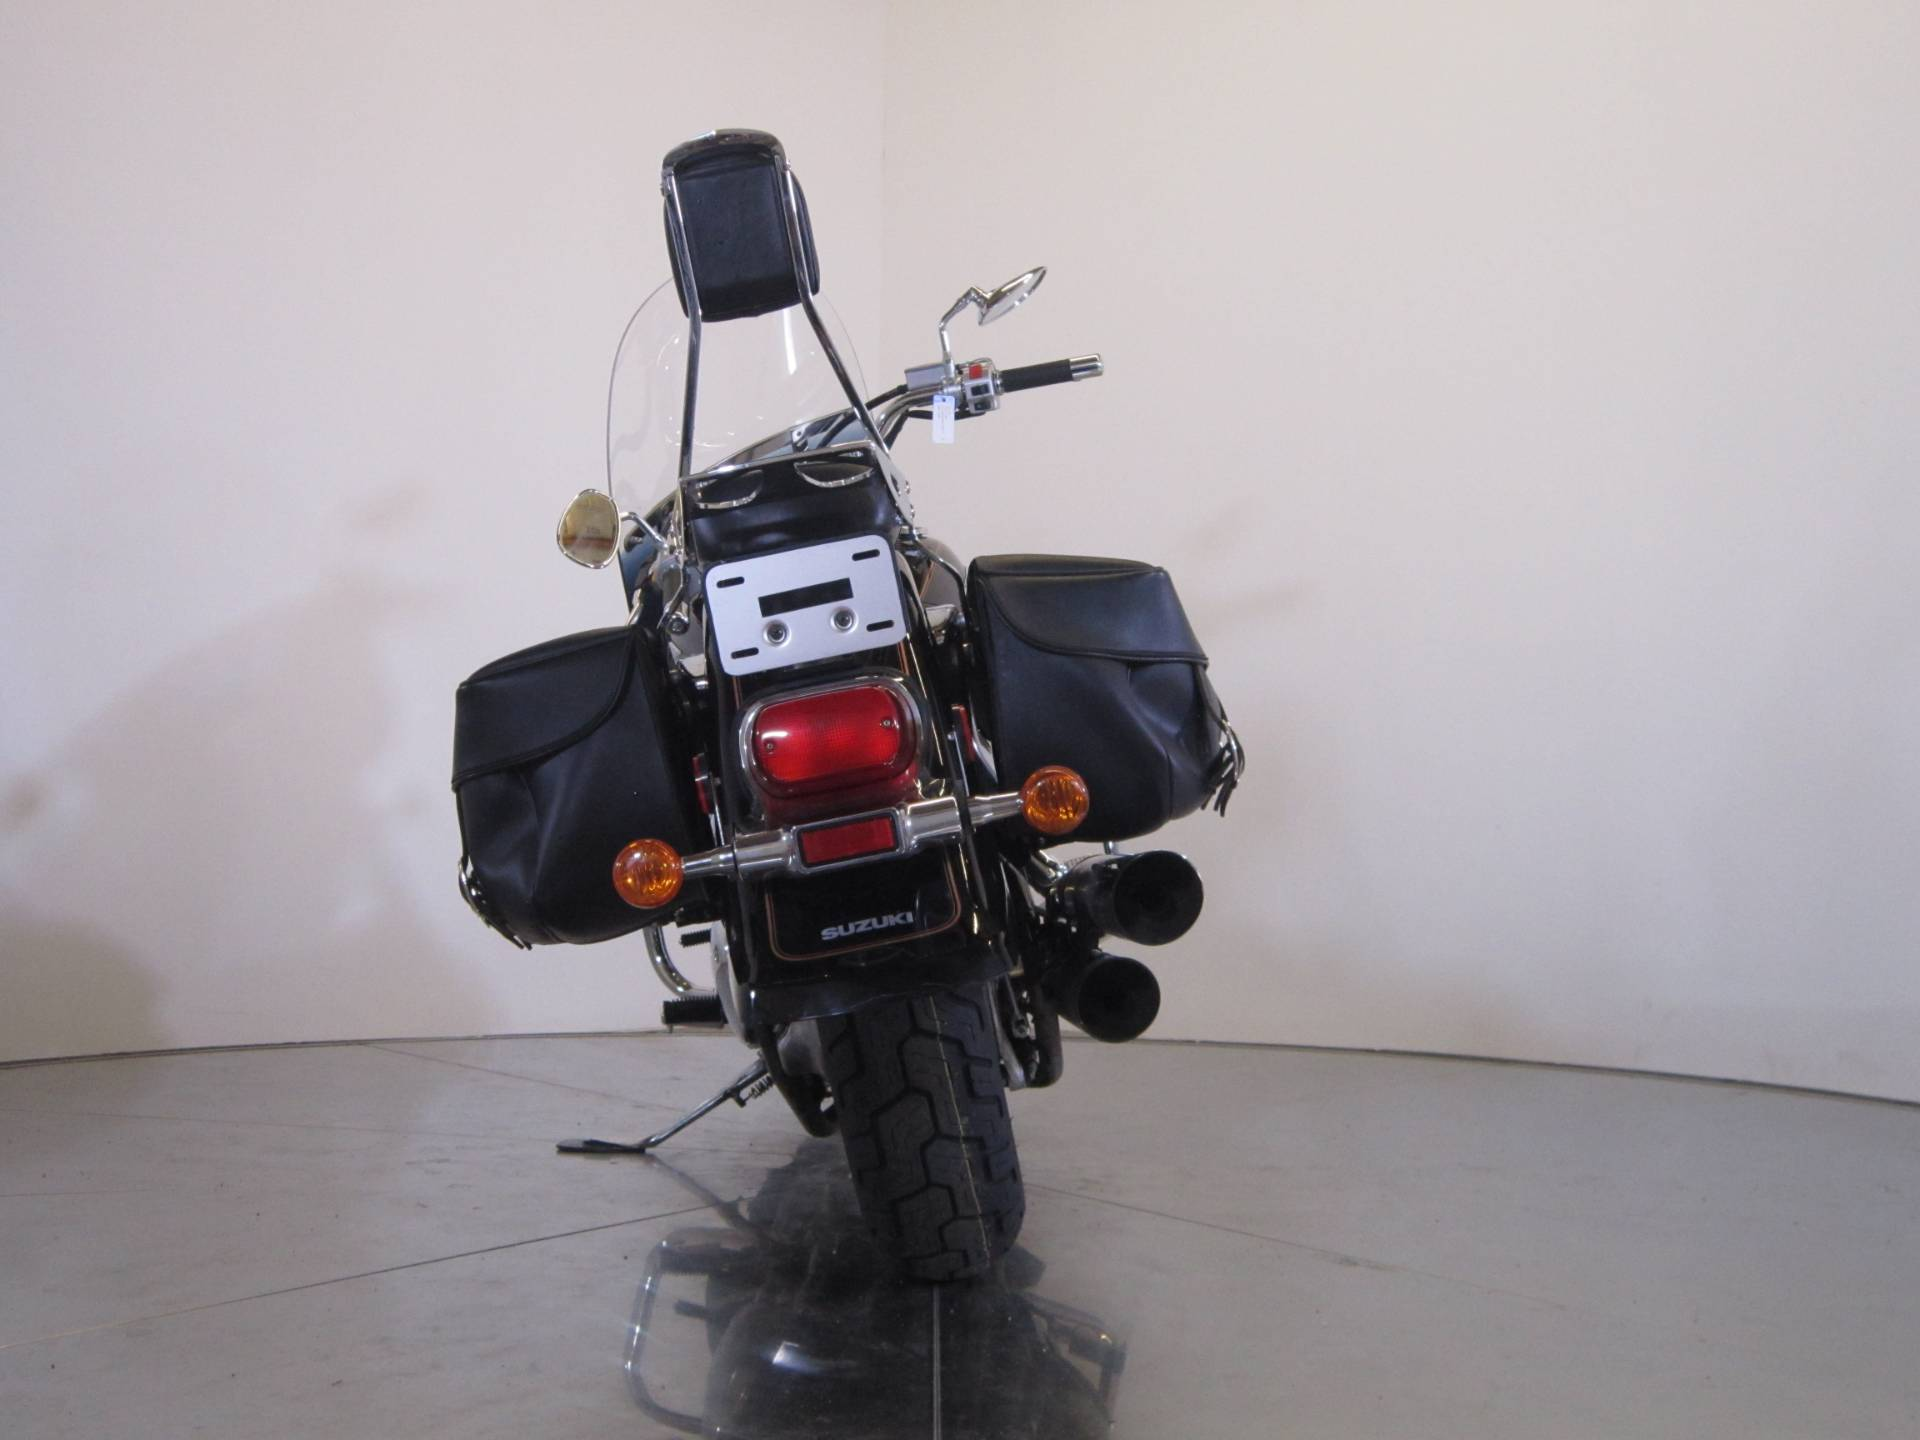 2004 Suzuki Intruder Volusia 800 7